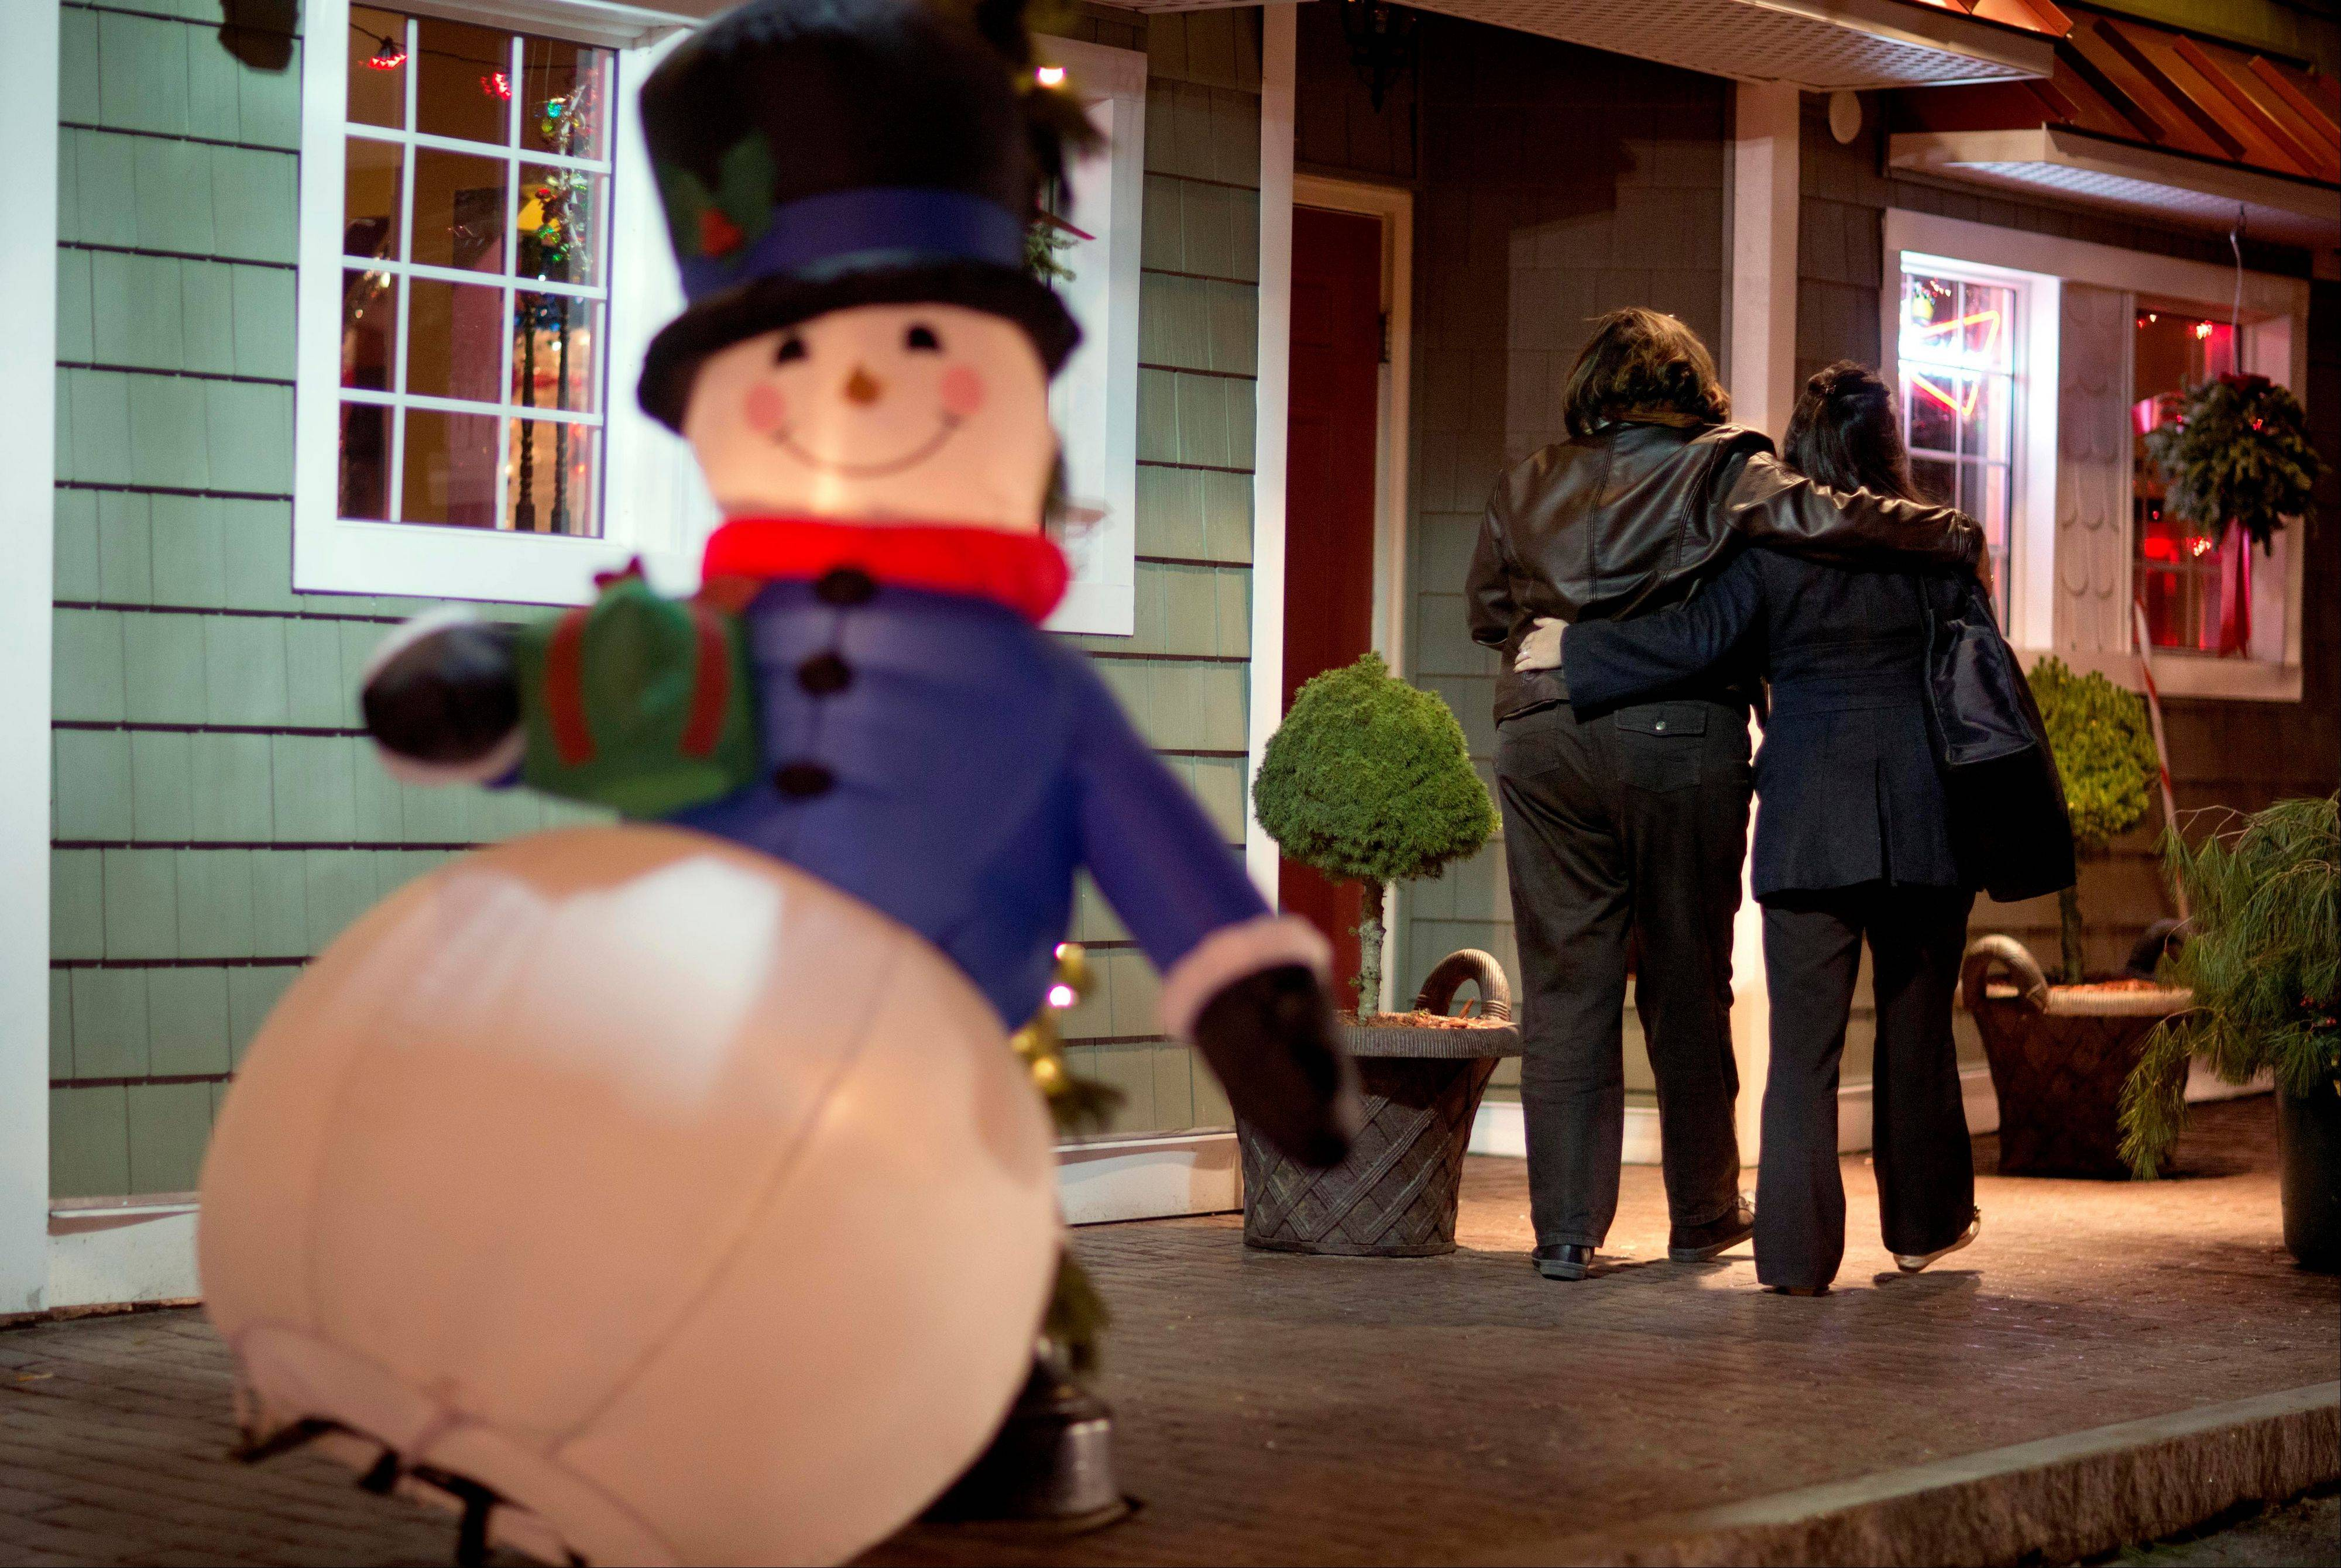 Connecticut town grapples with Christmas after school shootings